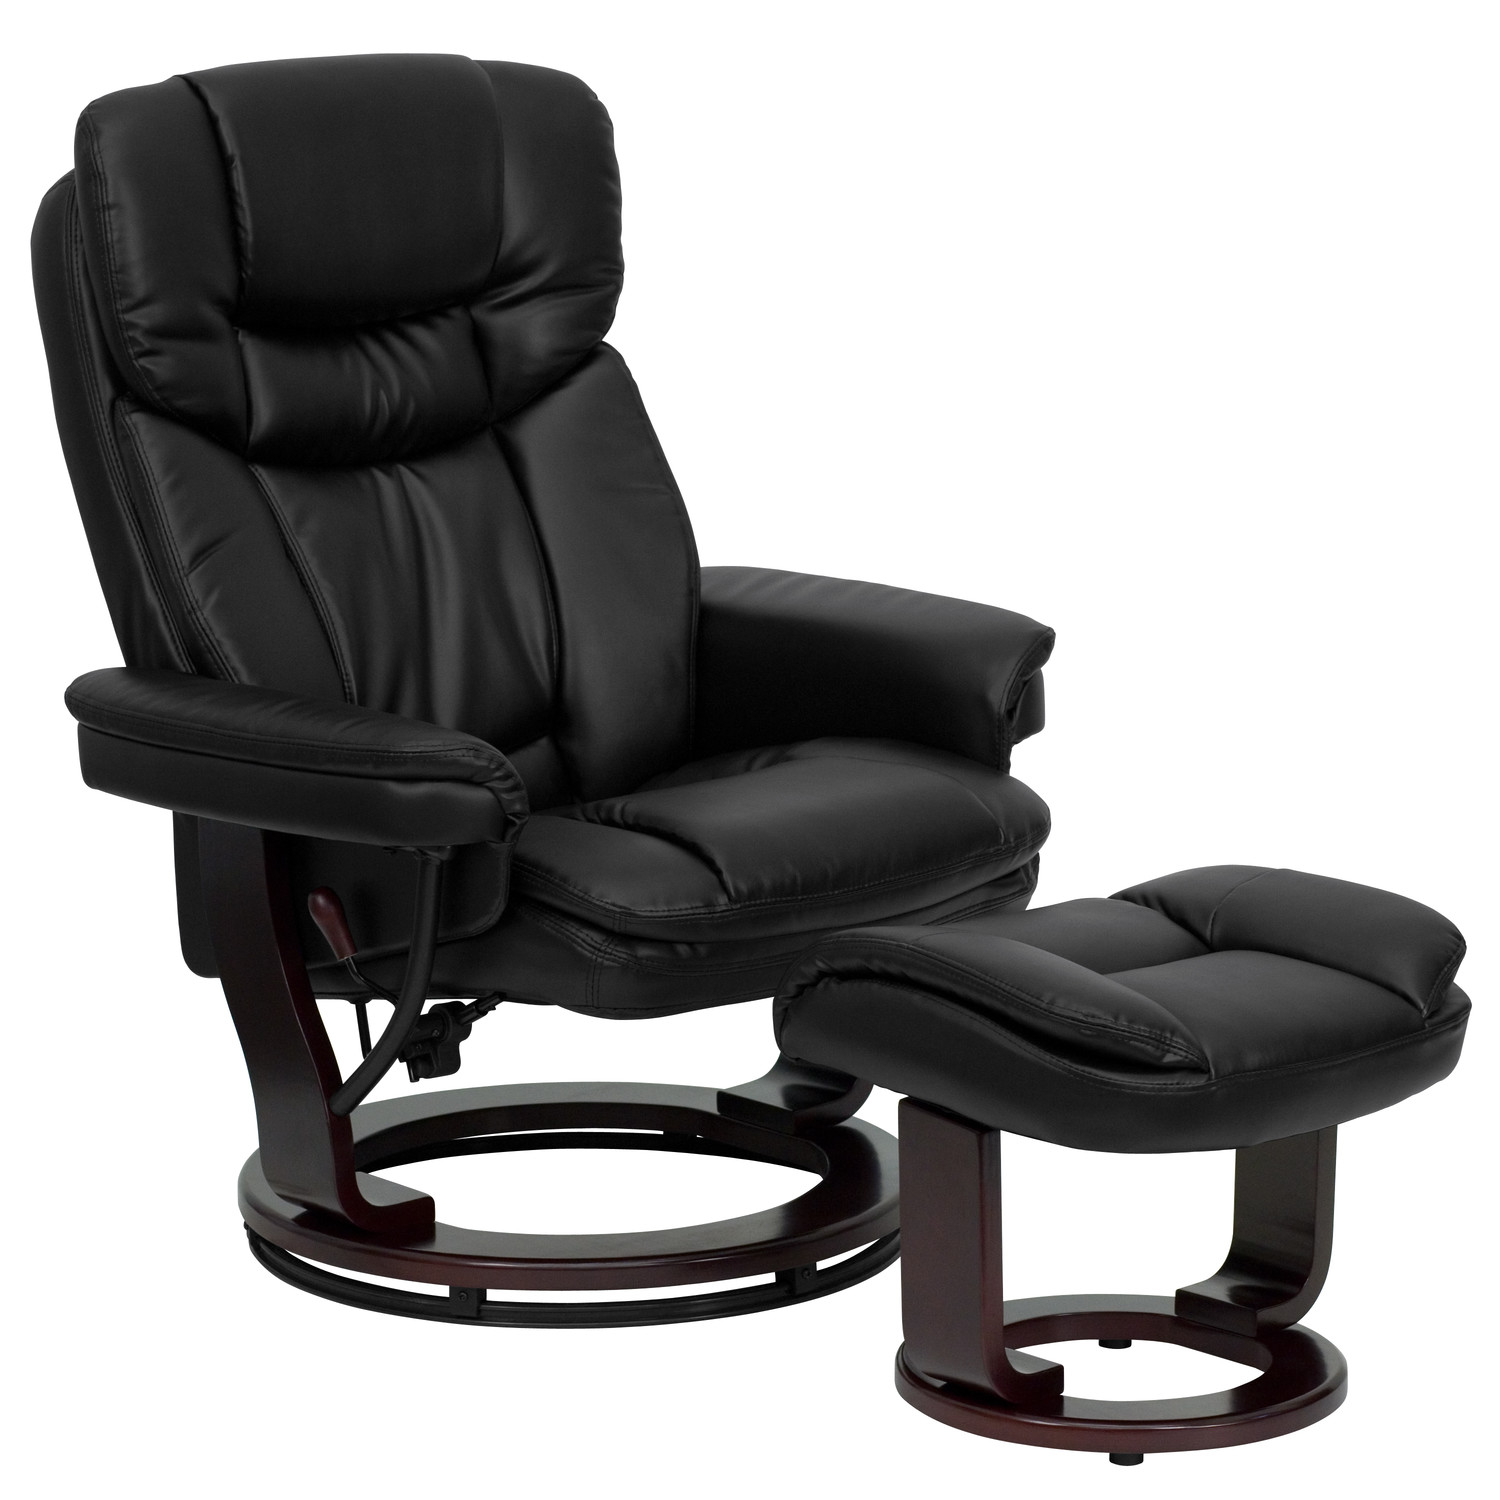 Image of: Stylish Leather Recliner Chair